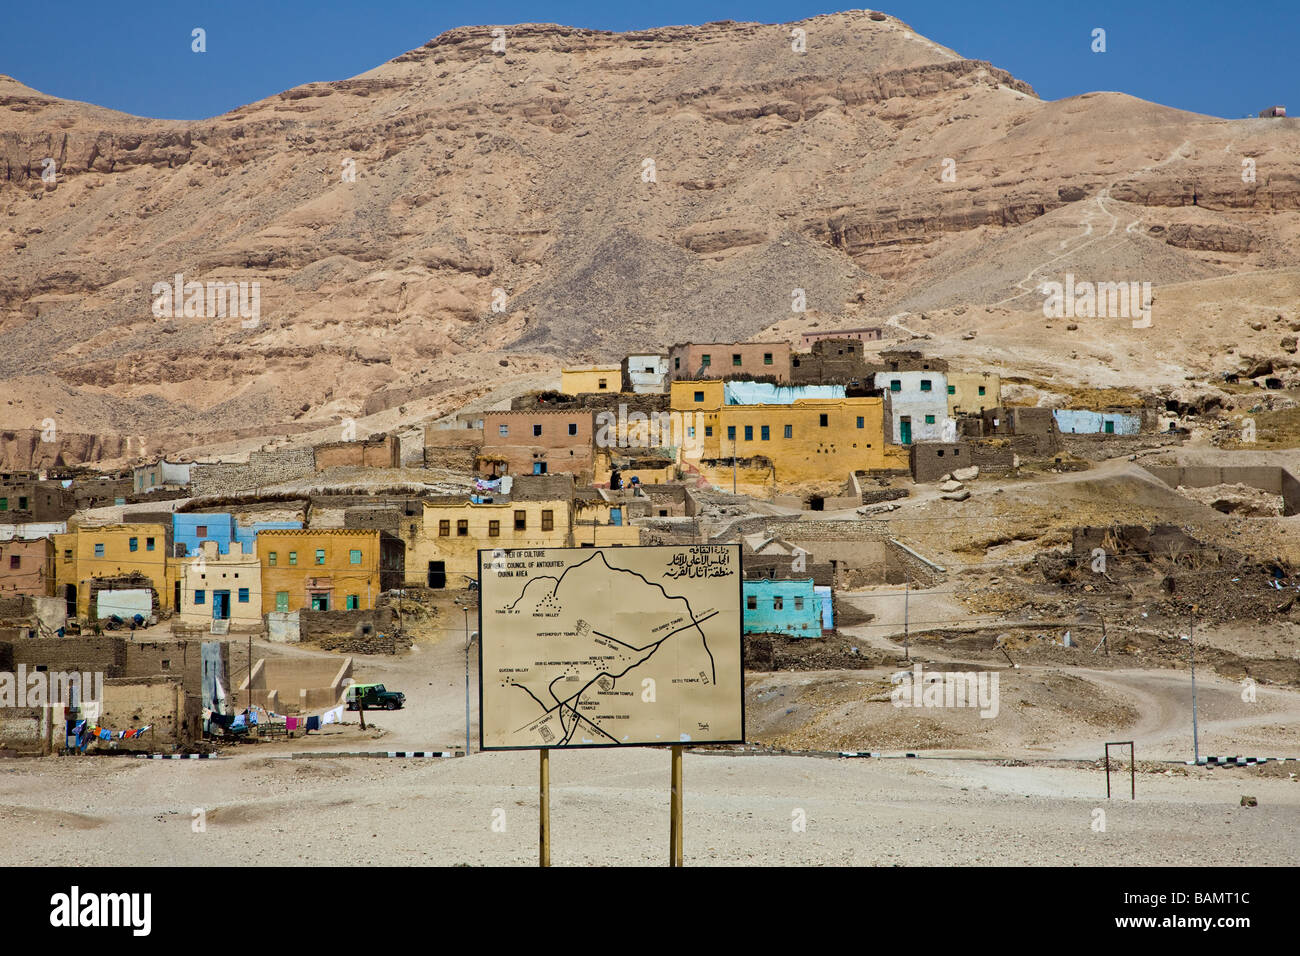 Village near the Valley of the Kings Egypt Africa - Stock Image